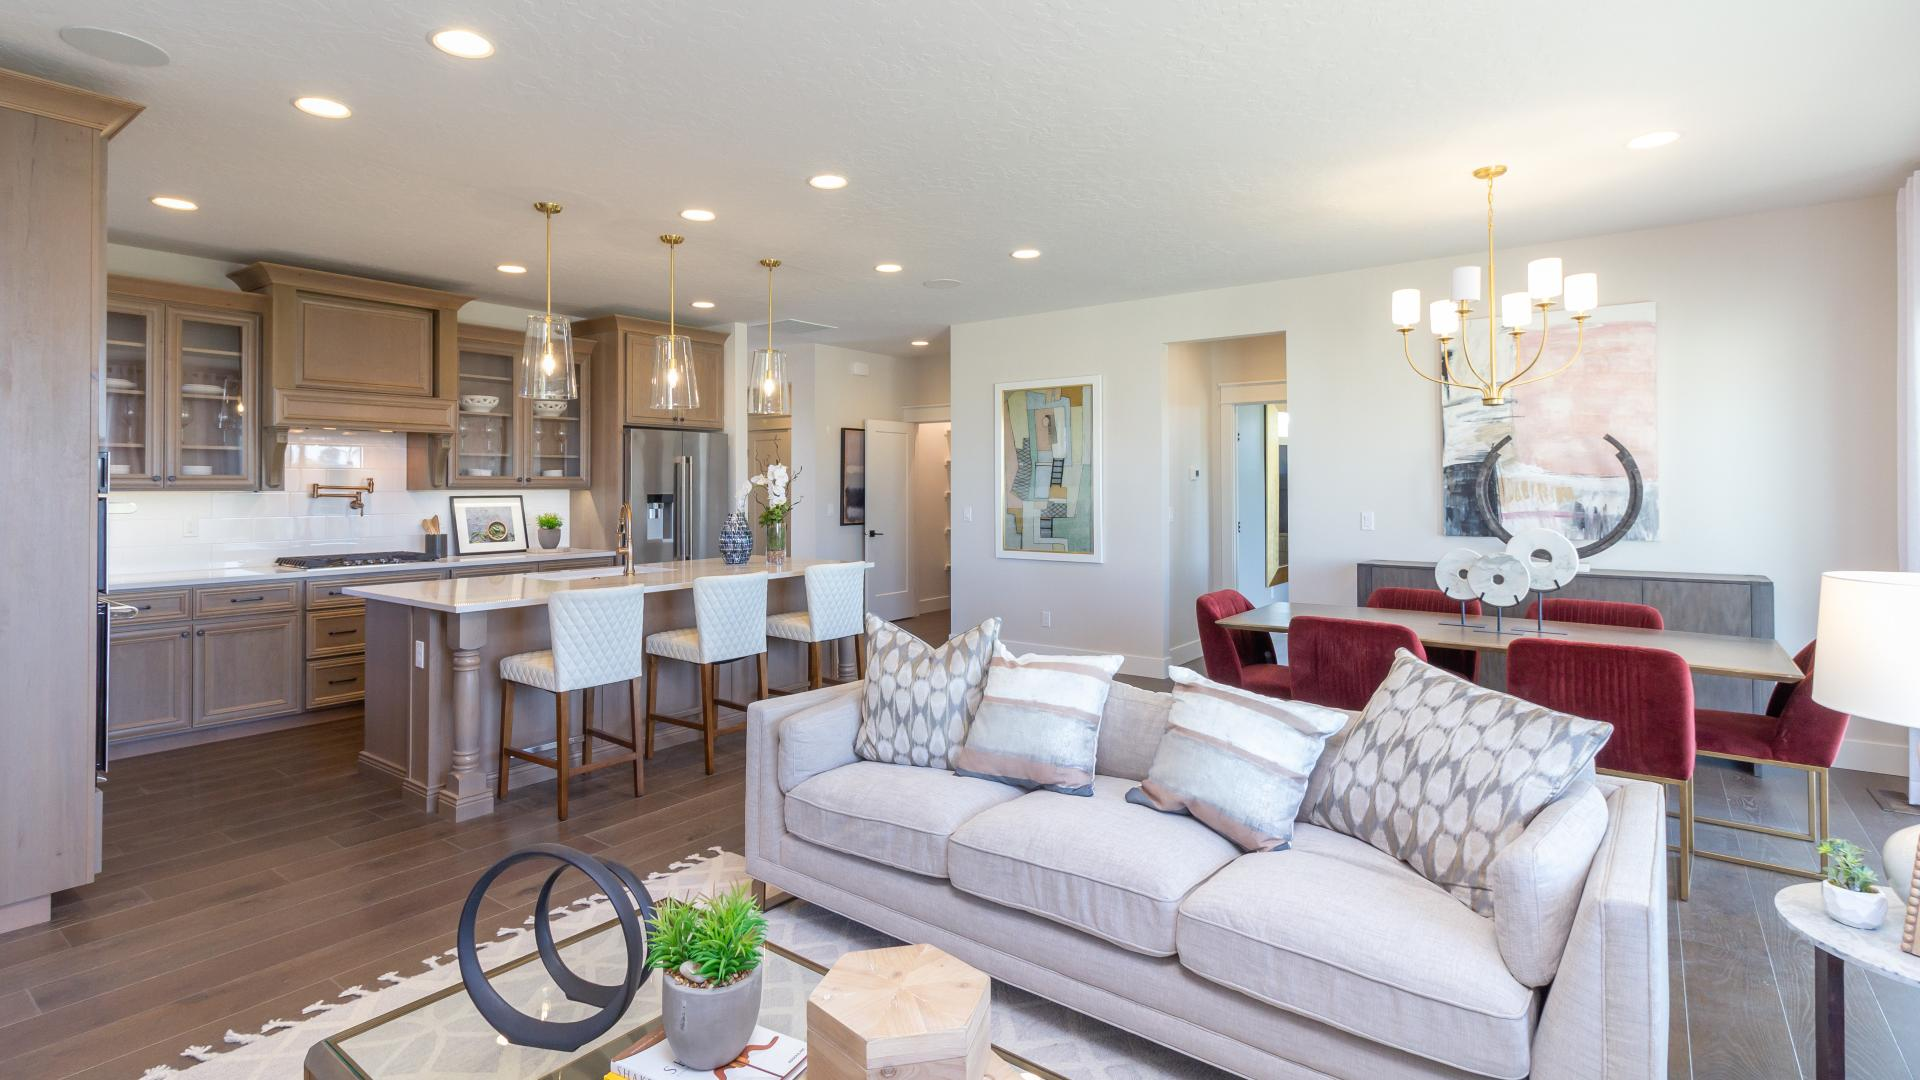 Open, flowing layout ideal for entertaining